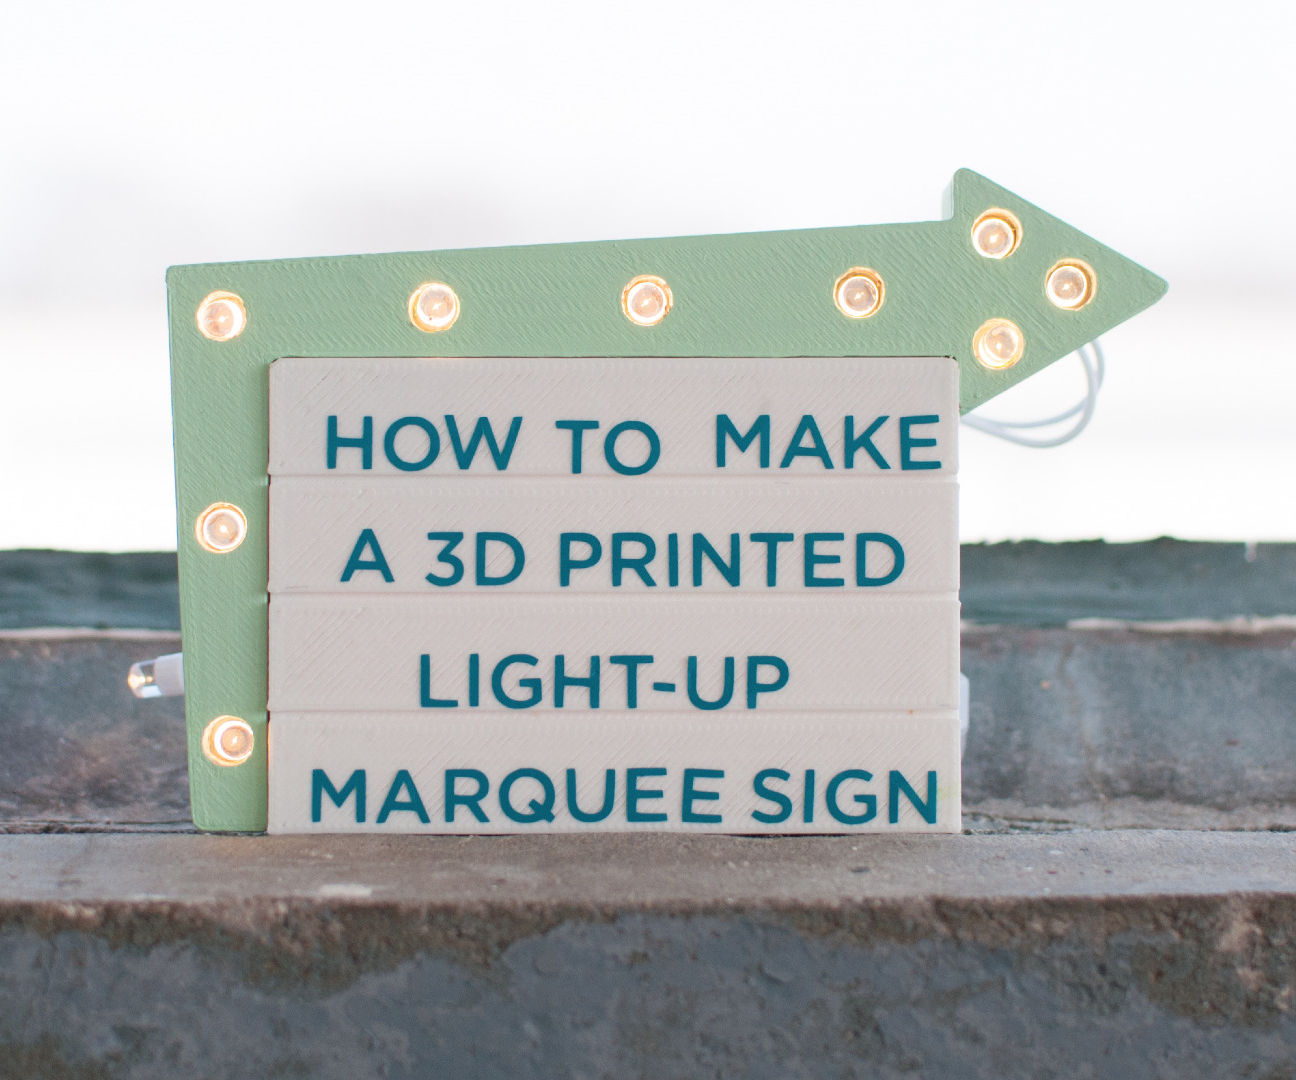 Make a 3D Printed Light-up Marquee Sign